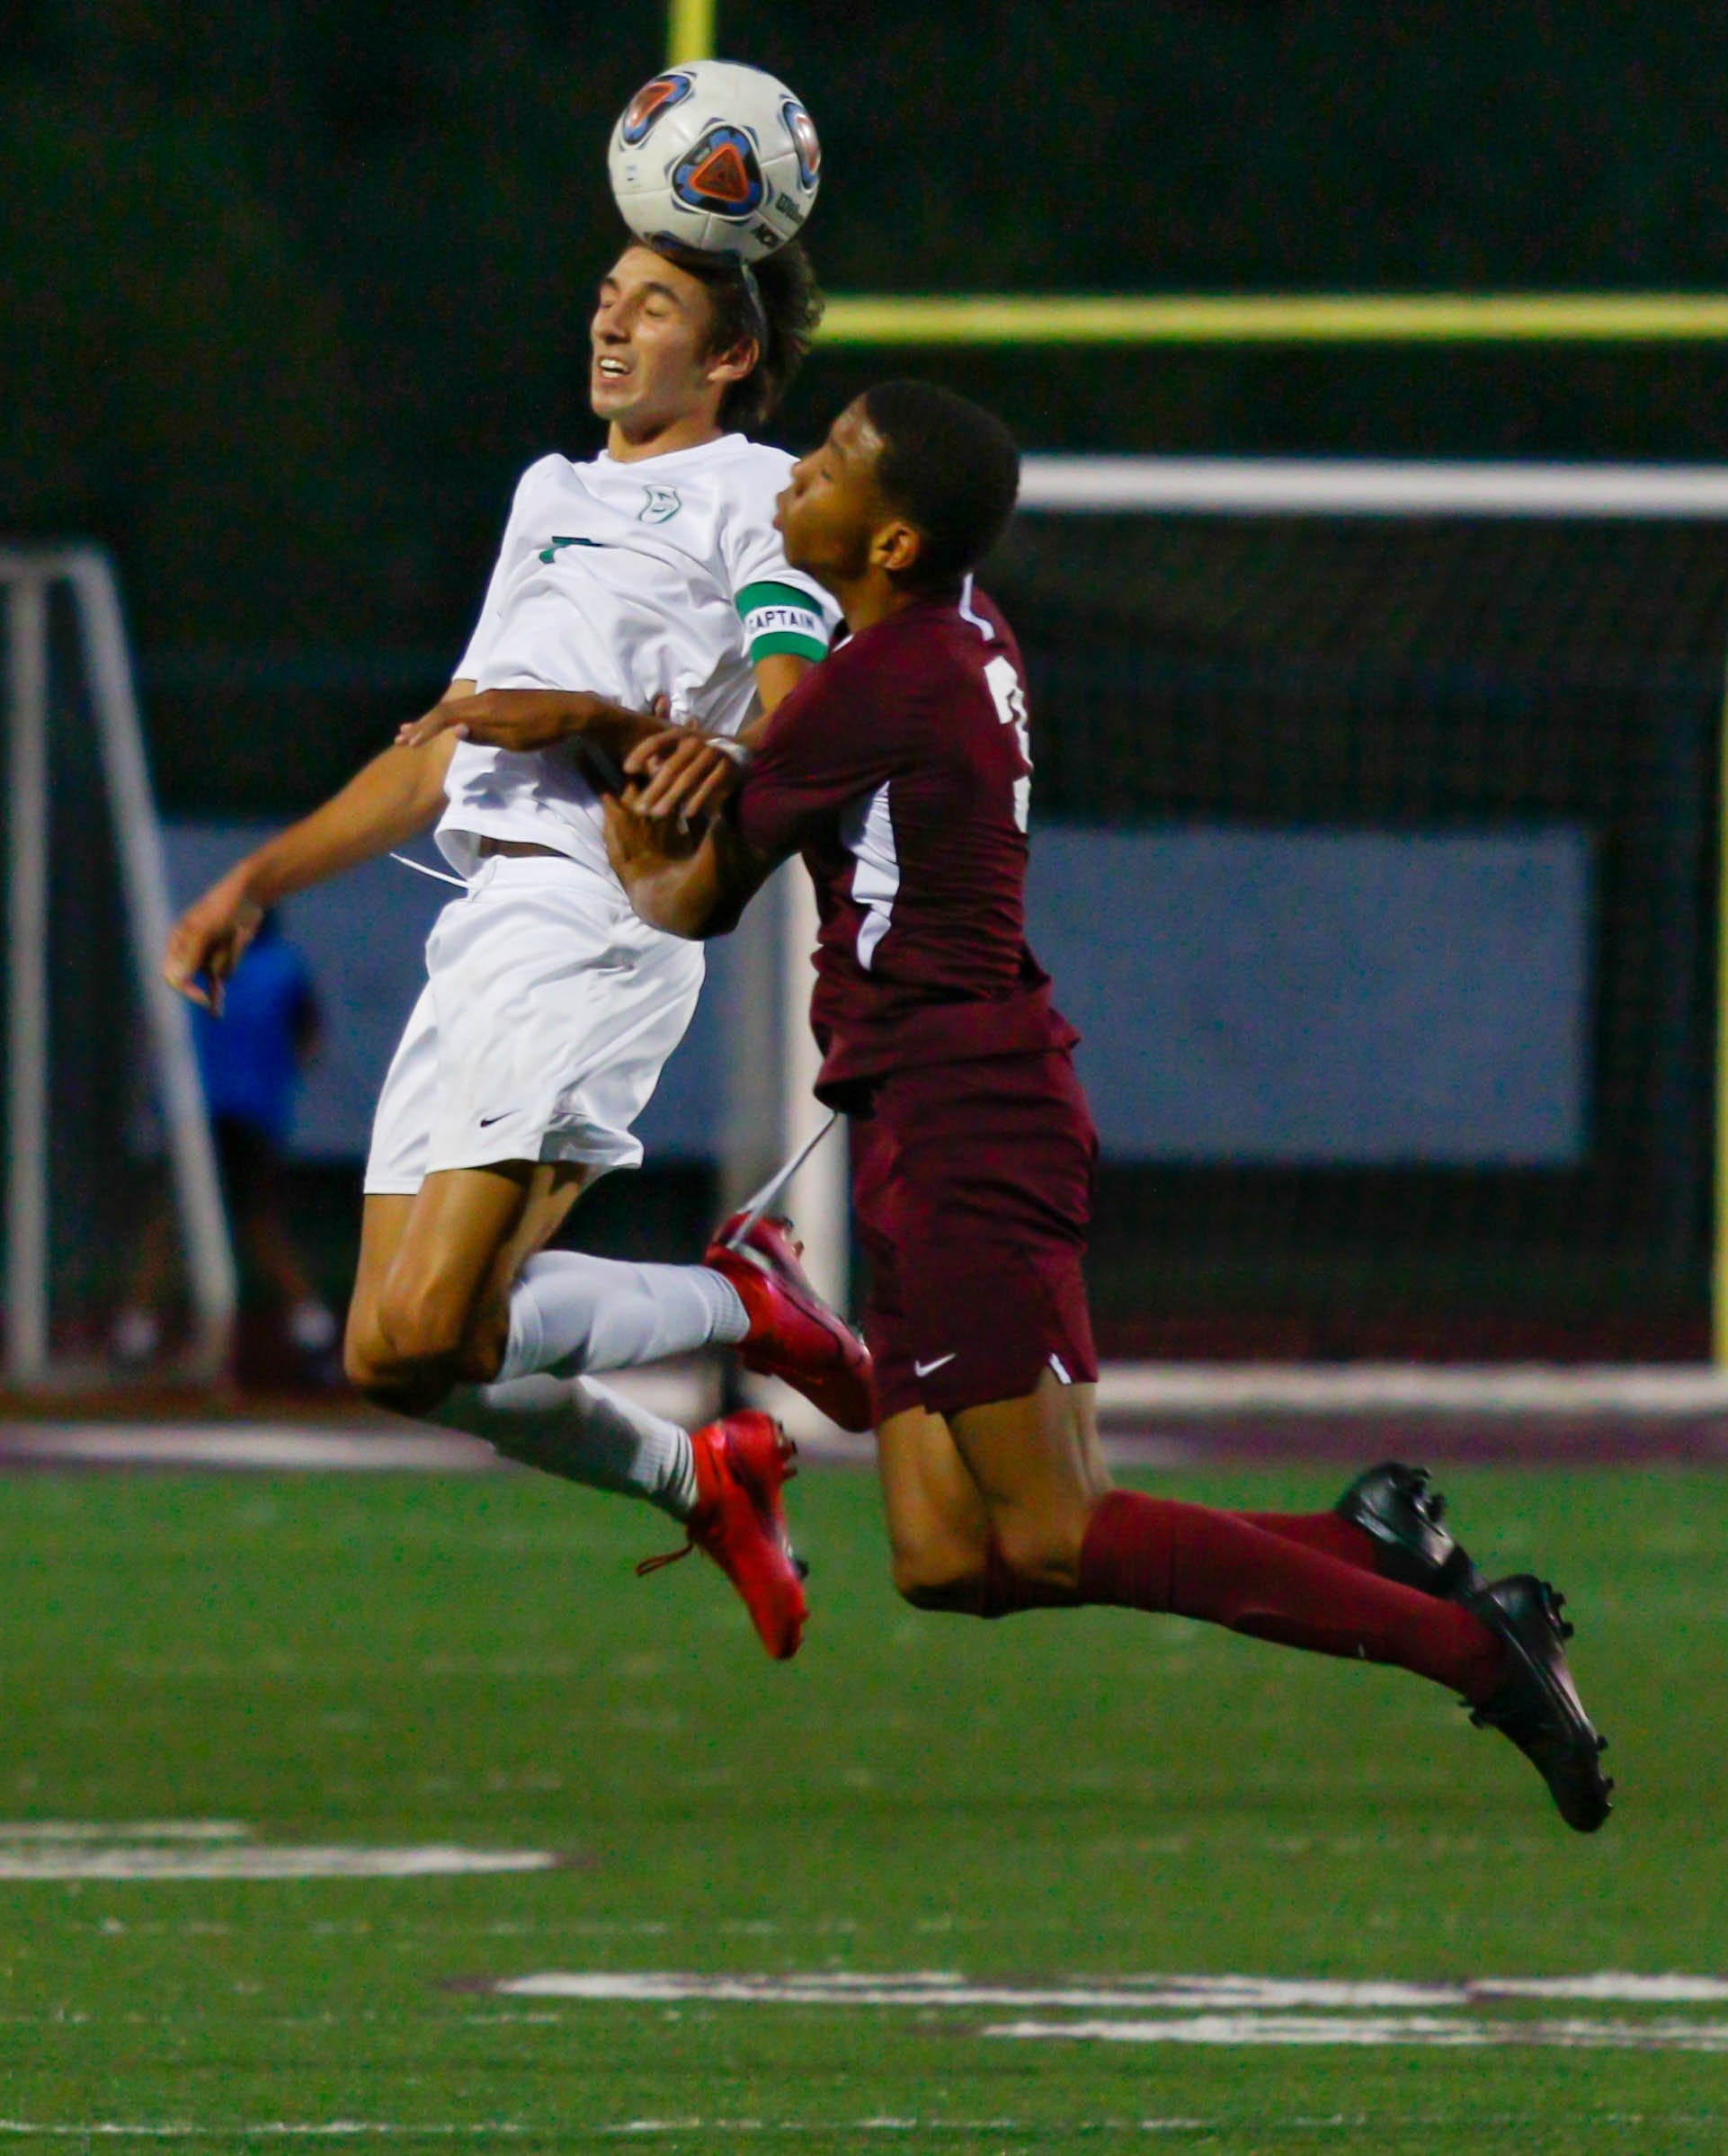 Scioto's Jayden Lunsford (left) heads the ball from Canal Winchester's Kylan Lewis on Sept. 15. Lunsford had a goal in a 2-0 victory over Westerville North on Oct. 13 as the Irish clinched the outright OCC-Capital title at 5-0-2.